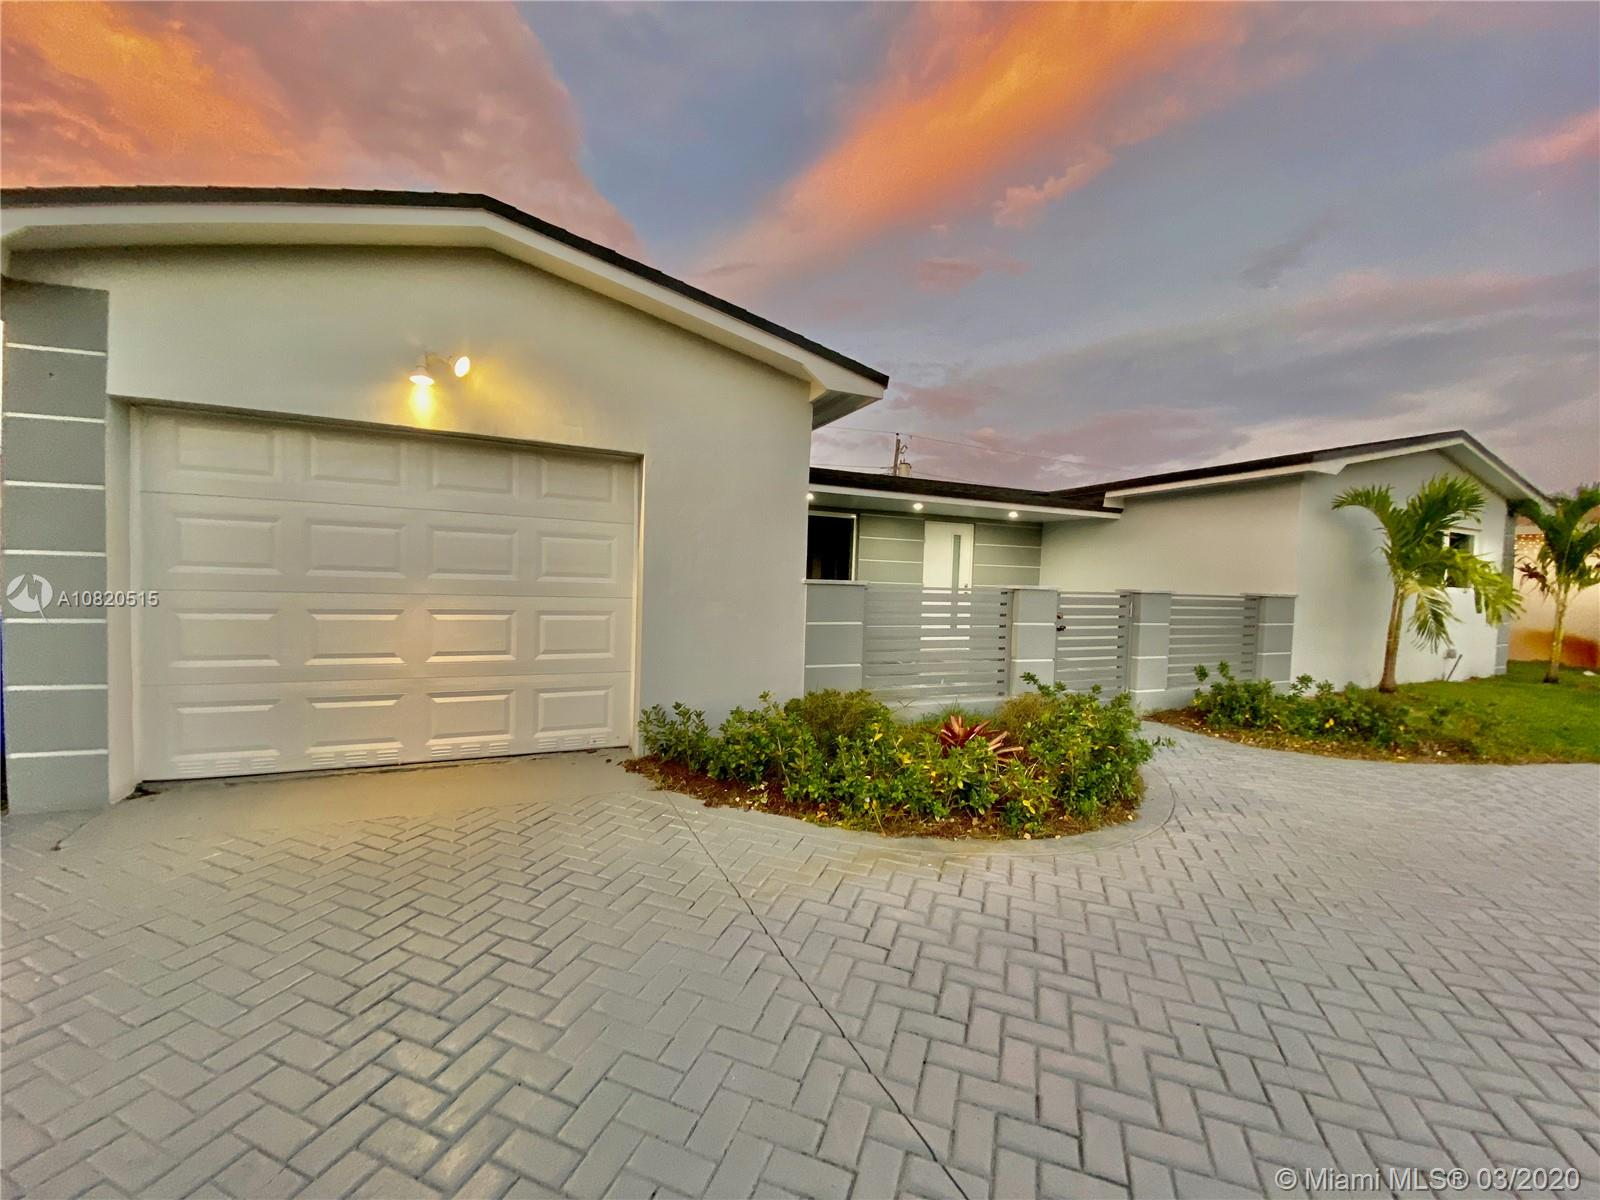 Boulevard Heights - 7741 NW 6th Ct, Pembroke Pines, FL 33024